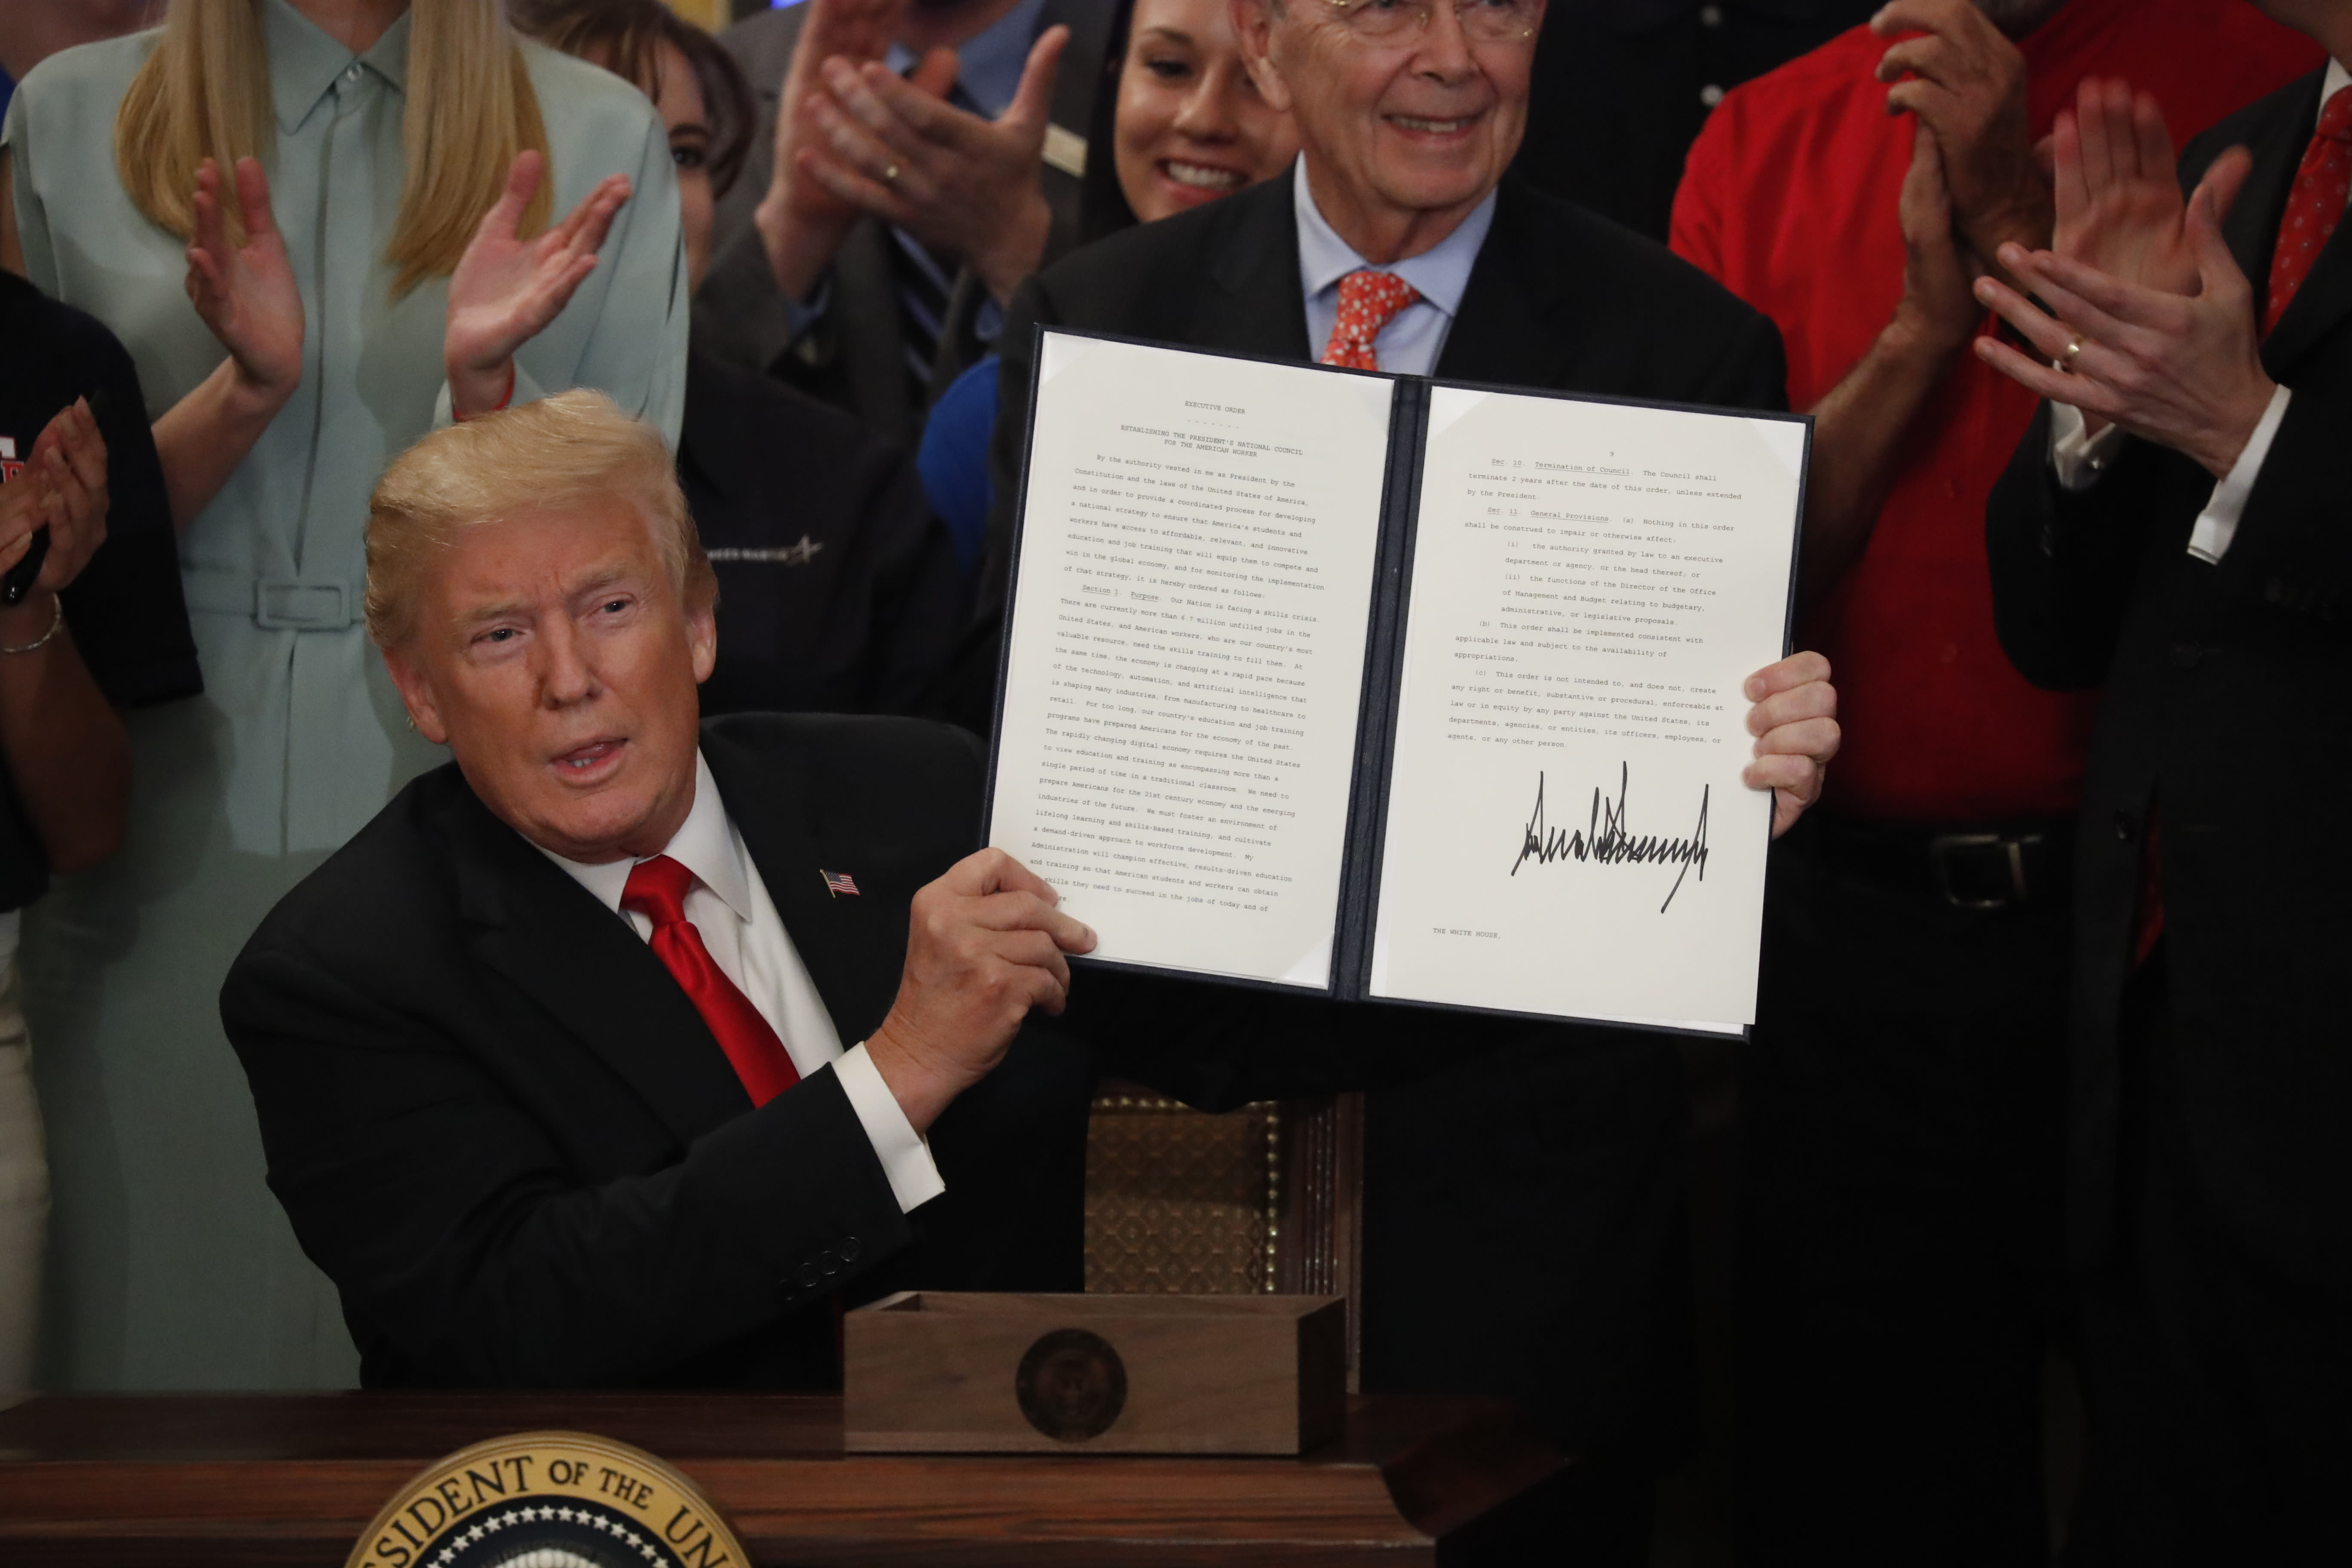 The Latest: Trump: US needs 'people with training' for jobs